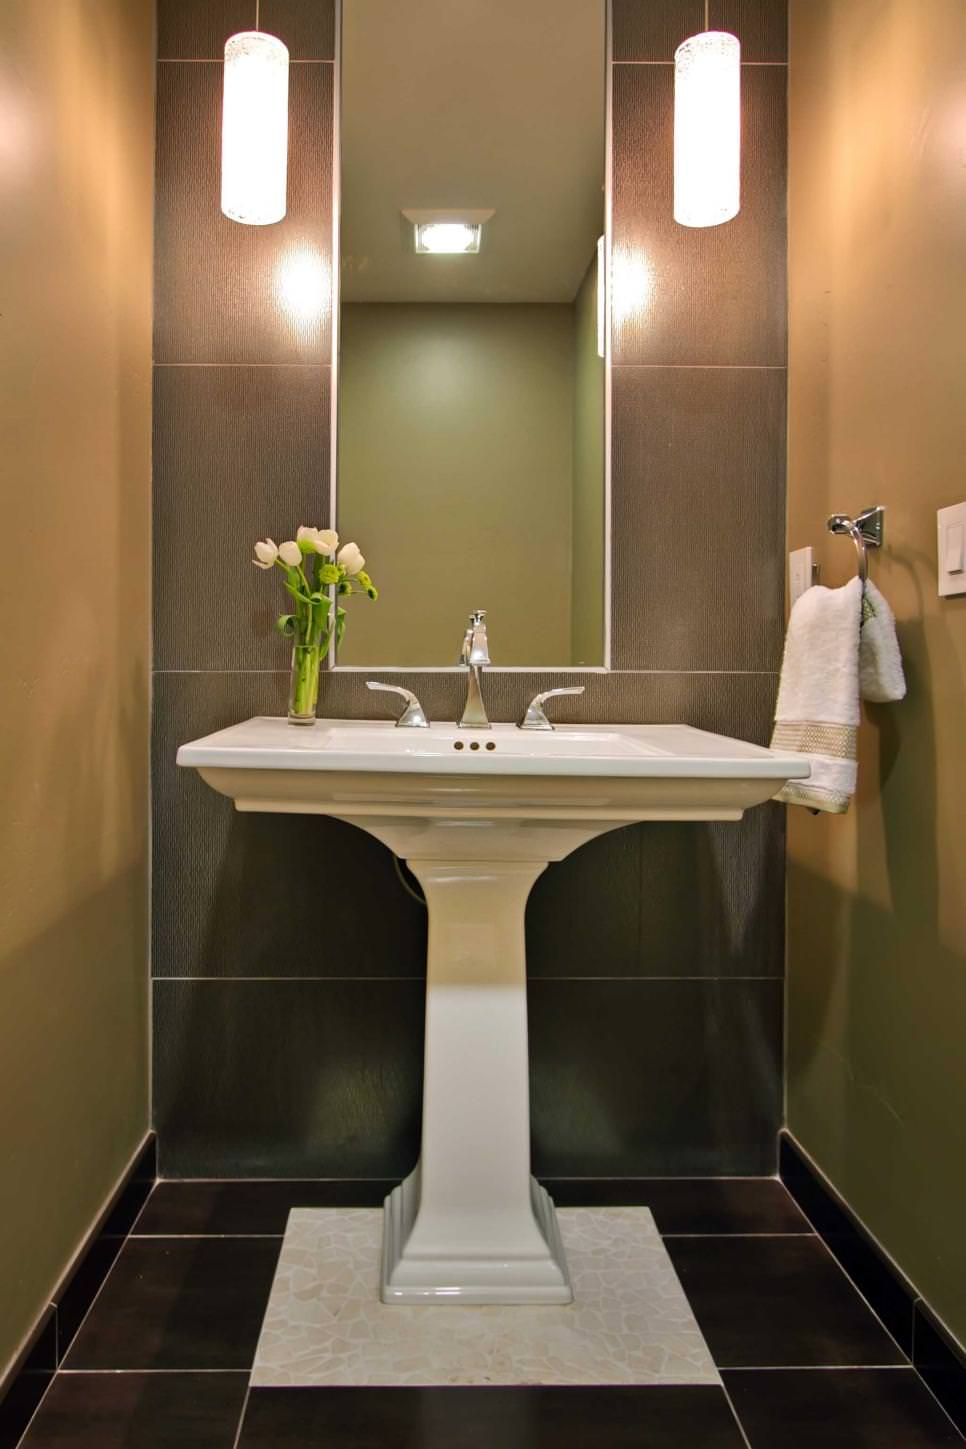 Toilet Room Designs: 24+ Bathroom Pedestal Sinks Ideas, Designs